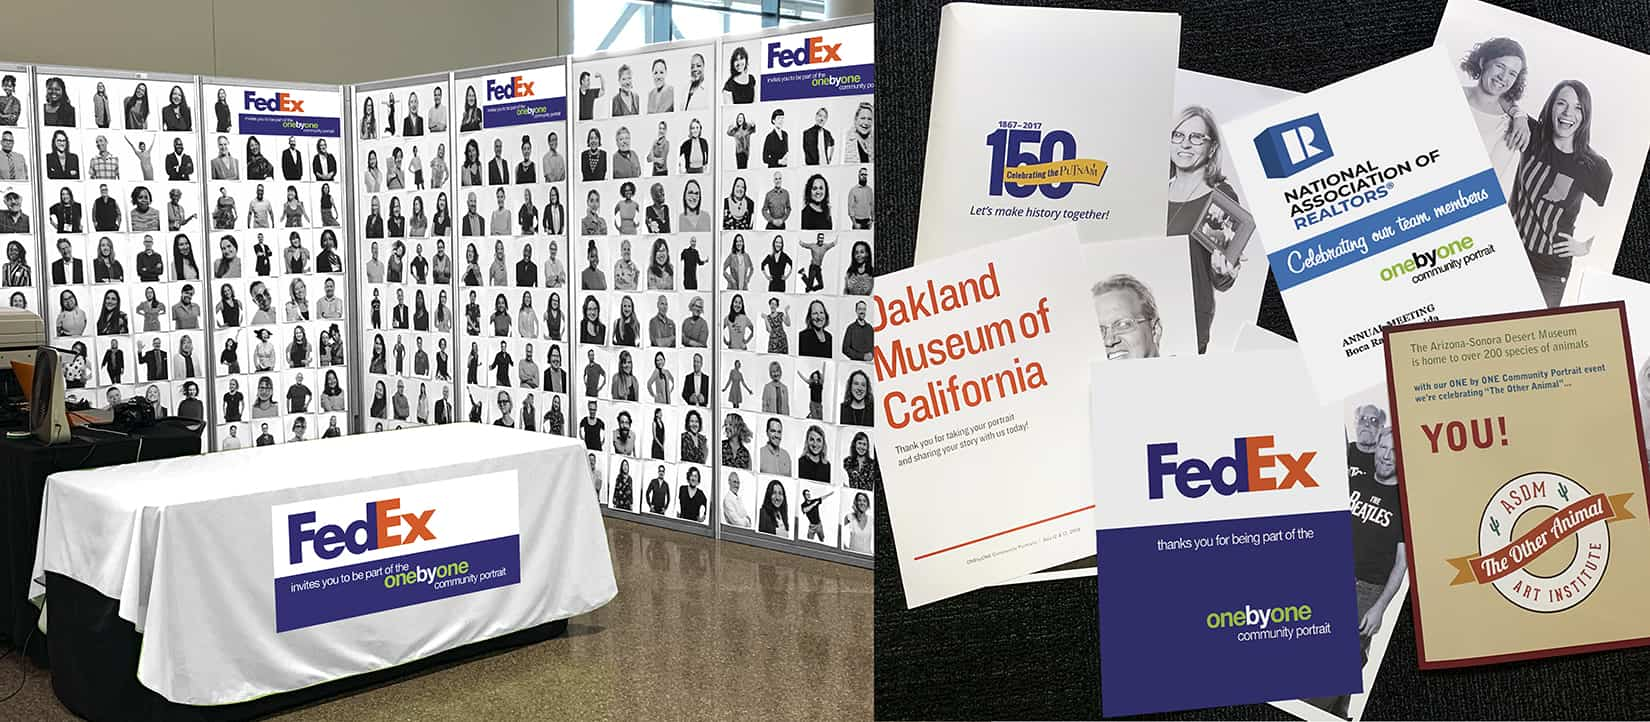 FedEx as sponsor of ONE by ONE Community Portrait